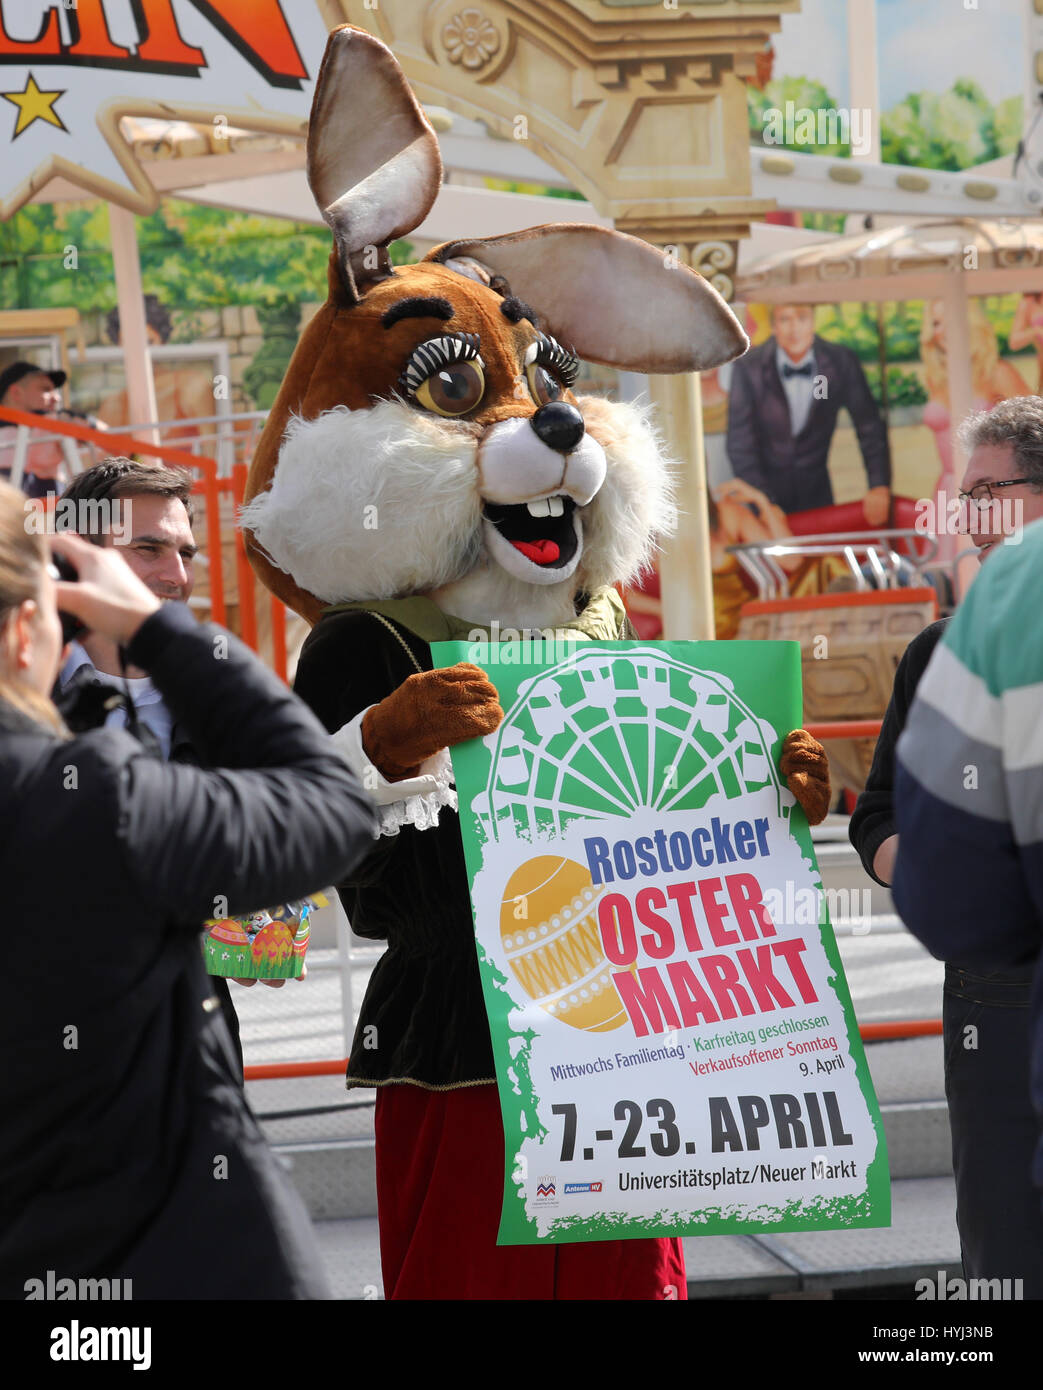 Verkaufsoffener Sonntag Rostock Rostock Germany 4th Apr 2017 An Easter Bunny Figure Advertises